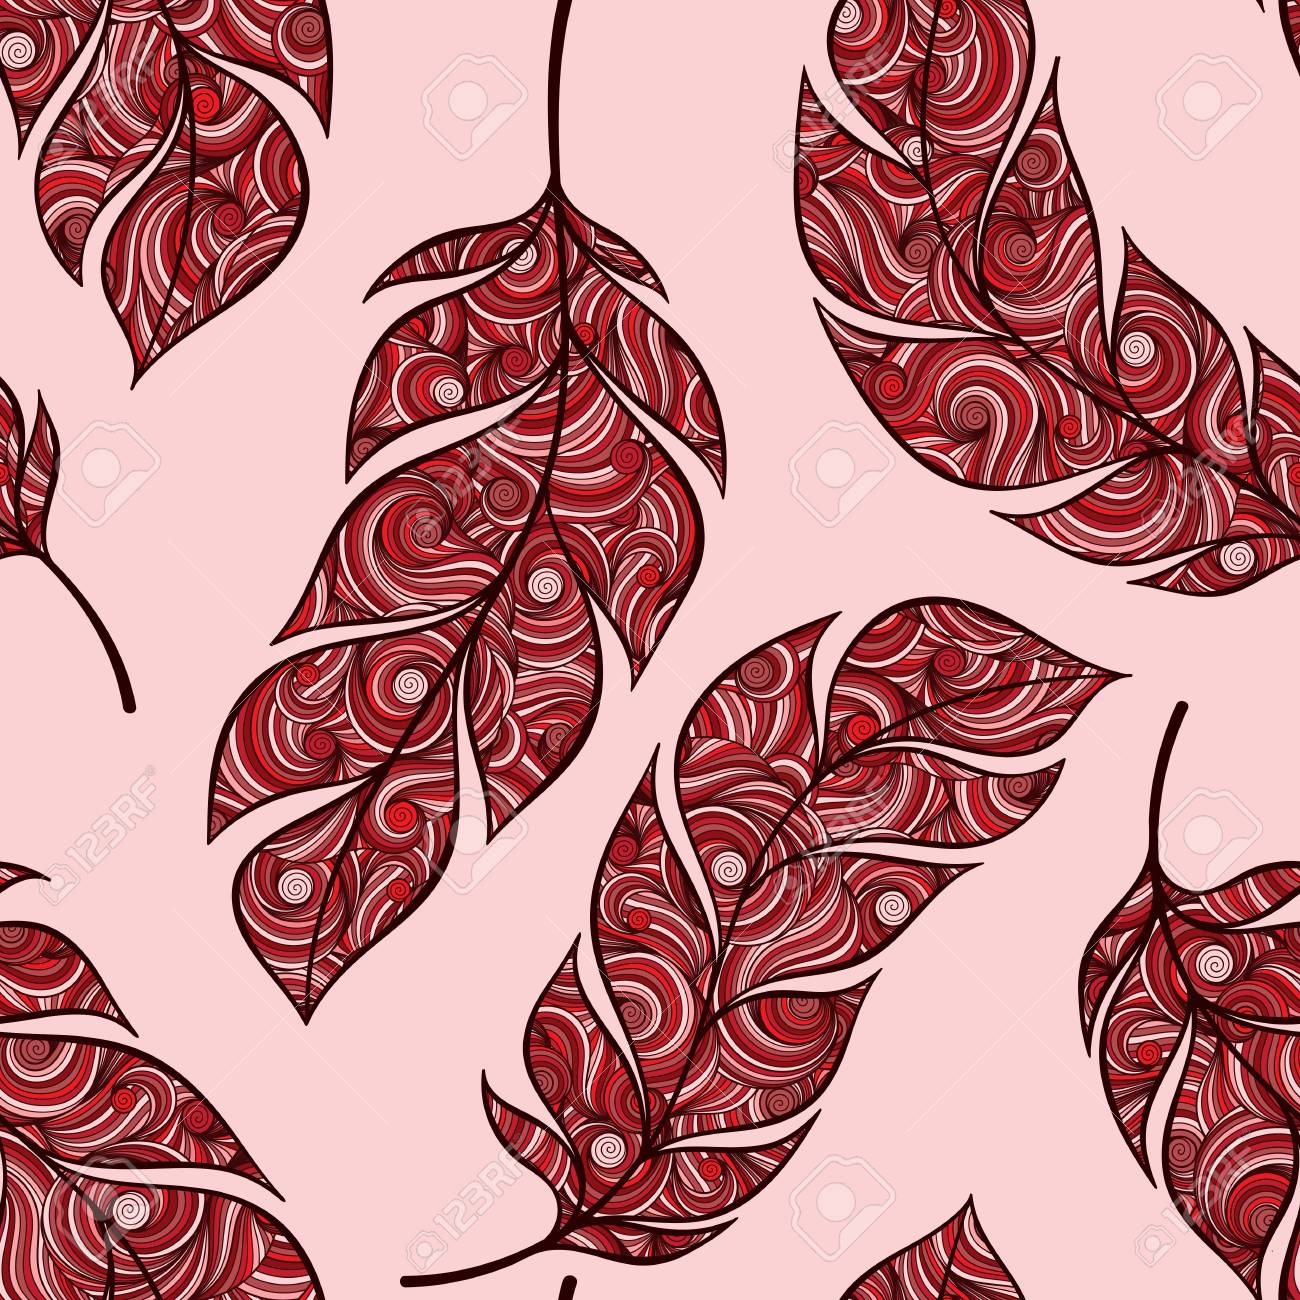 Vintage Seamless Pattern With Hand Drawn Feathers For Desktop